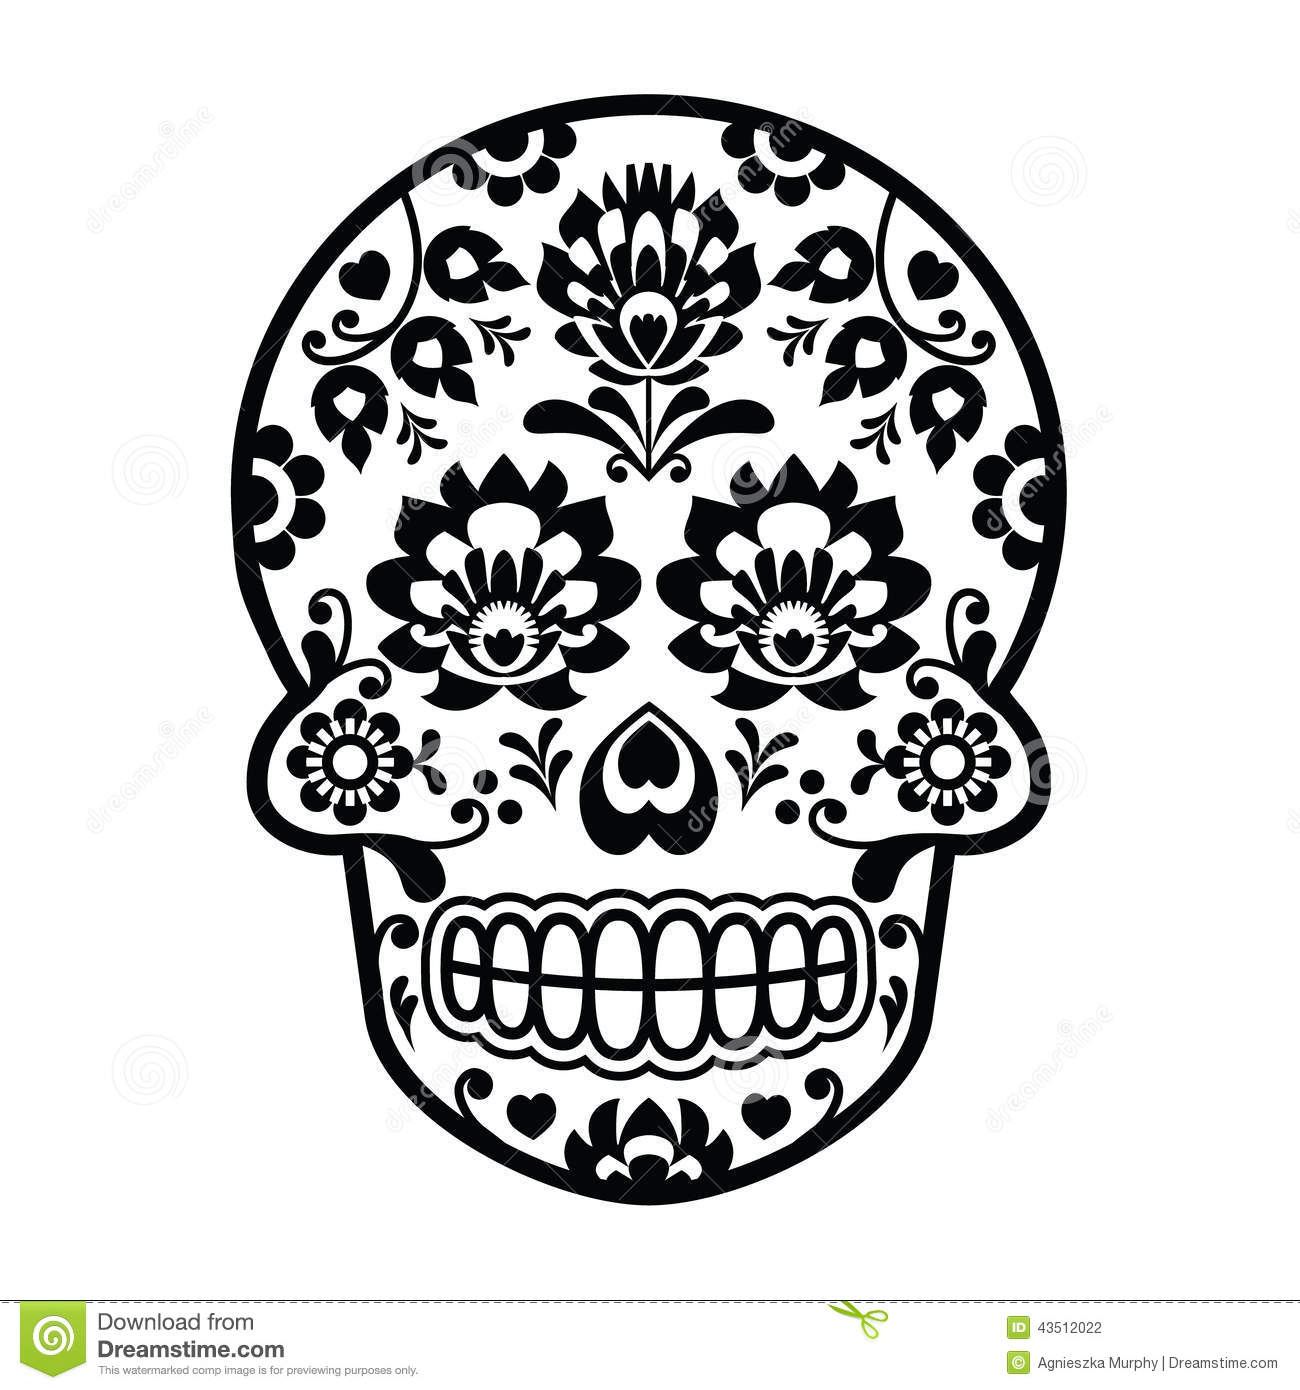 325455510547192065 moreover Stock Illustration Mexican Sugar Skull Polish Folk Art Style Wzory Lowickie Wycinanka Dia De Los Muertos Black Icon Slavic Floral Isolated White Image43512022 likewise Feeling Blessed furthermore 189291990564411723 moreover . on knitting patterns for free